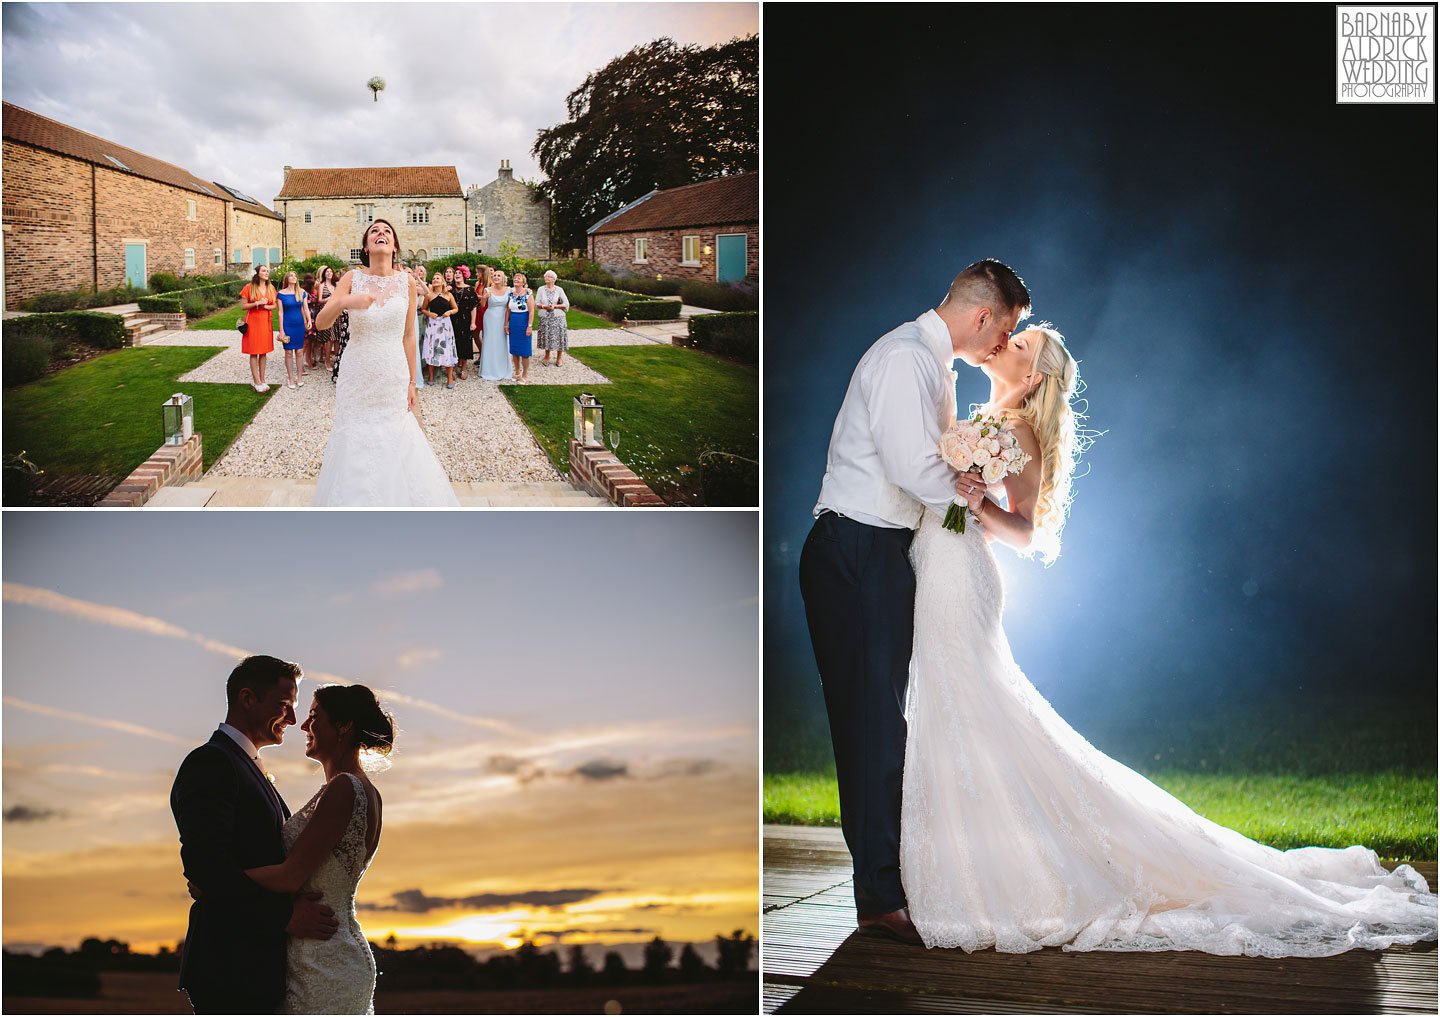 A bouquet toss and evening portraits from weddings at Priory Cottages in Yorkshire